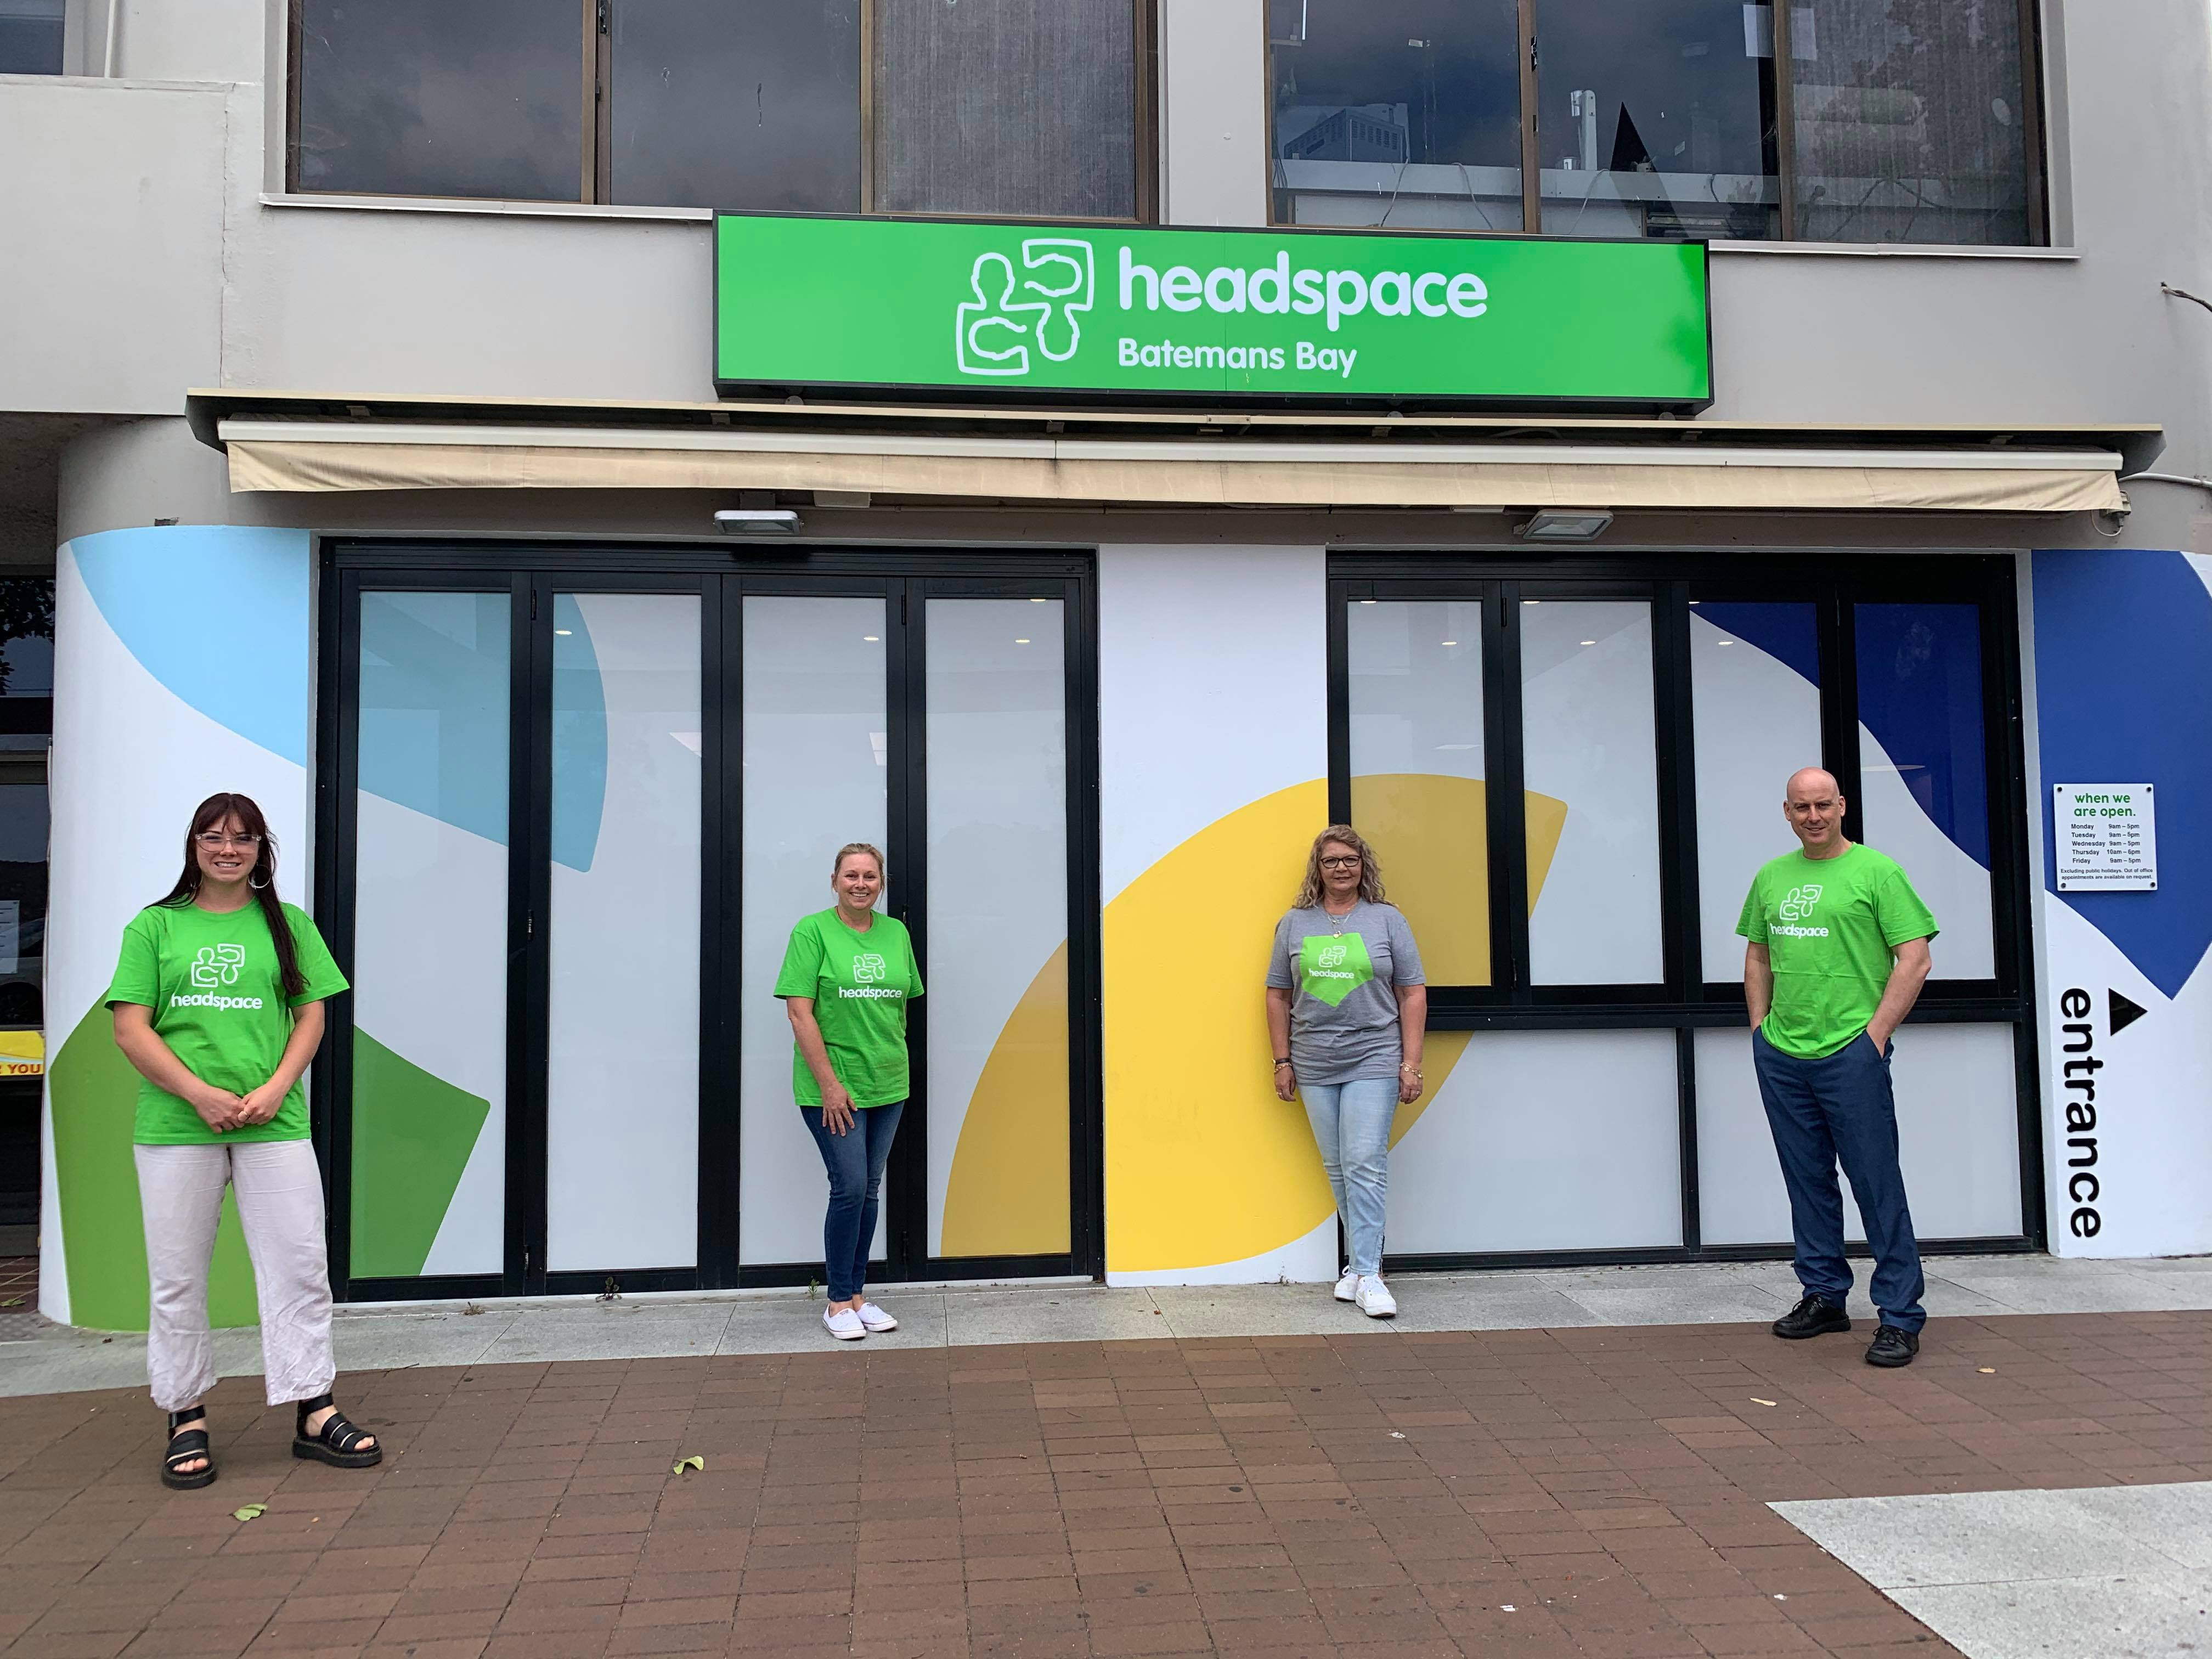 New year and new place for headspace Batemans Bay